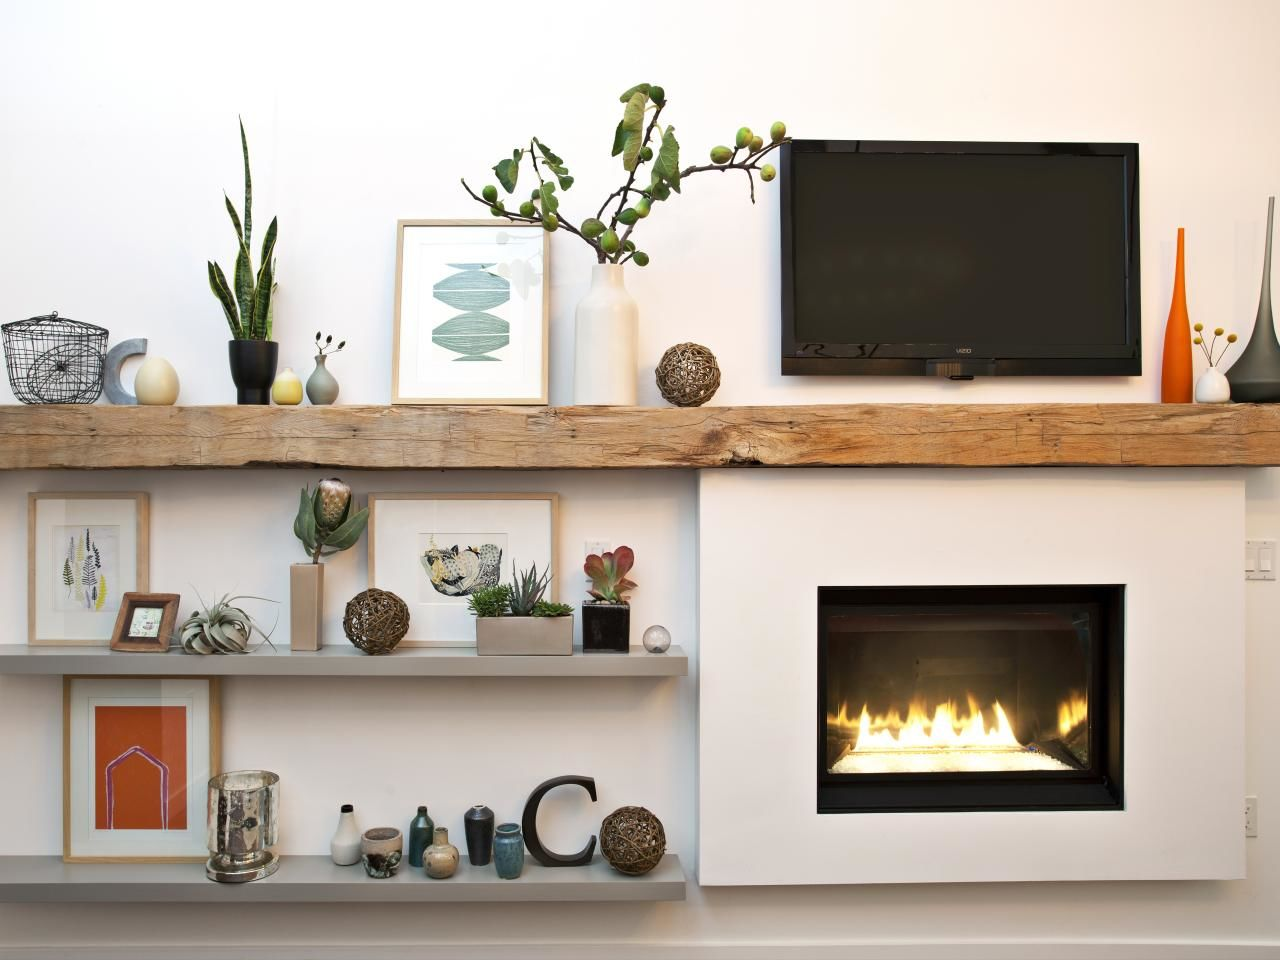 tips diy and decorate your fireplace mantel shelf extended floating for wall book cubes hidden drawer oak bookshelf ikea kallax storage system black gloss shelves pedestal sink